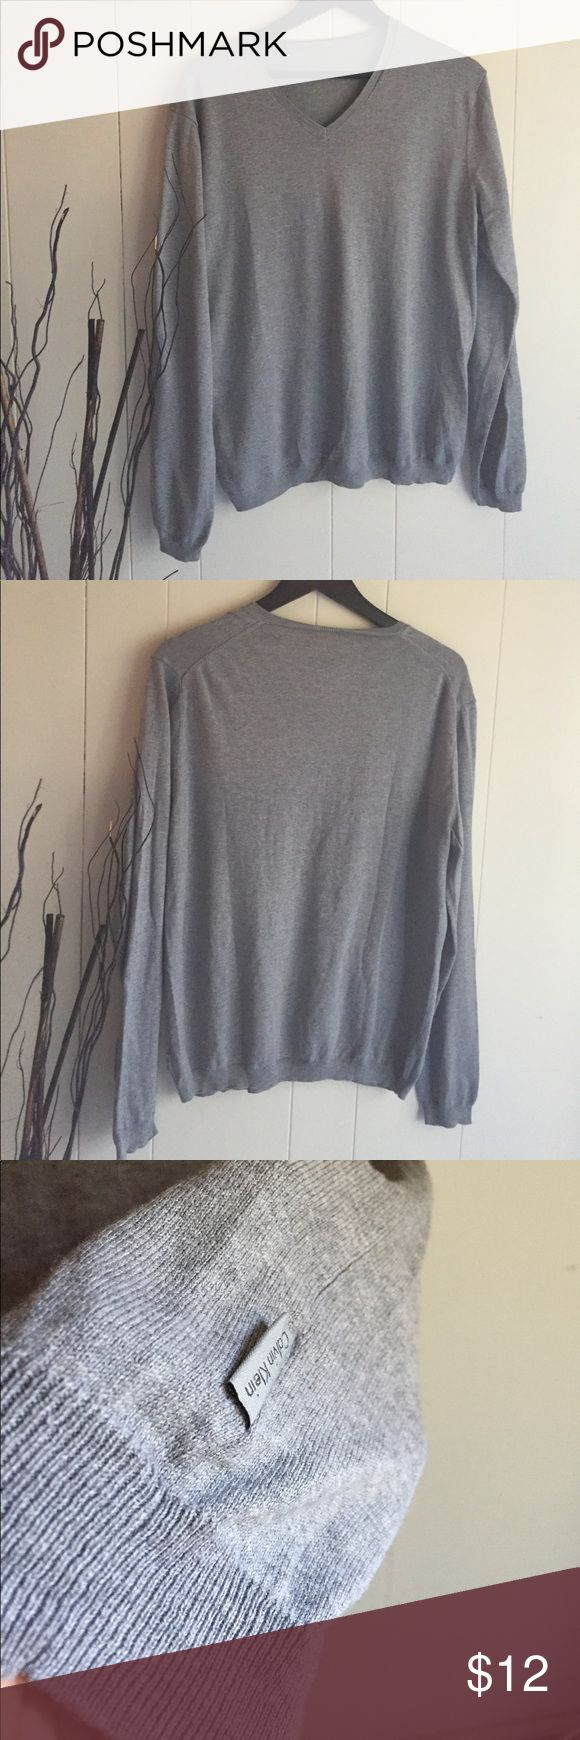 Men's V neck sweater Gray Calvin Klein men's sweater missing inside label (itched his back) Calvin Klein Sweaters V-Neck